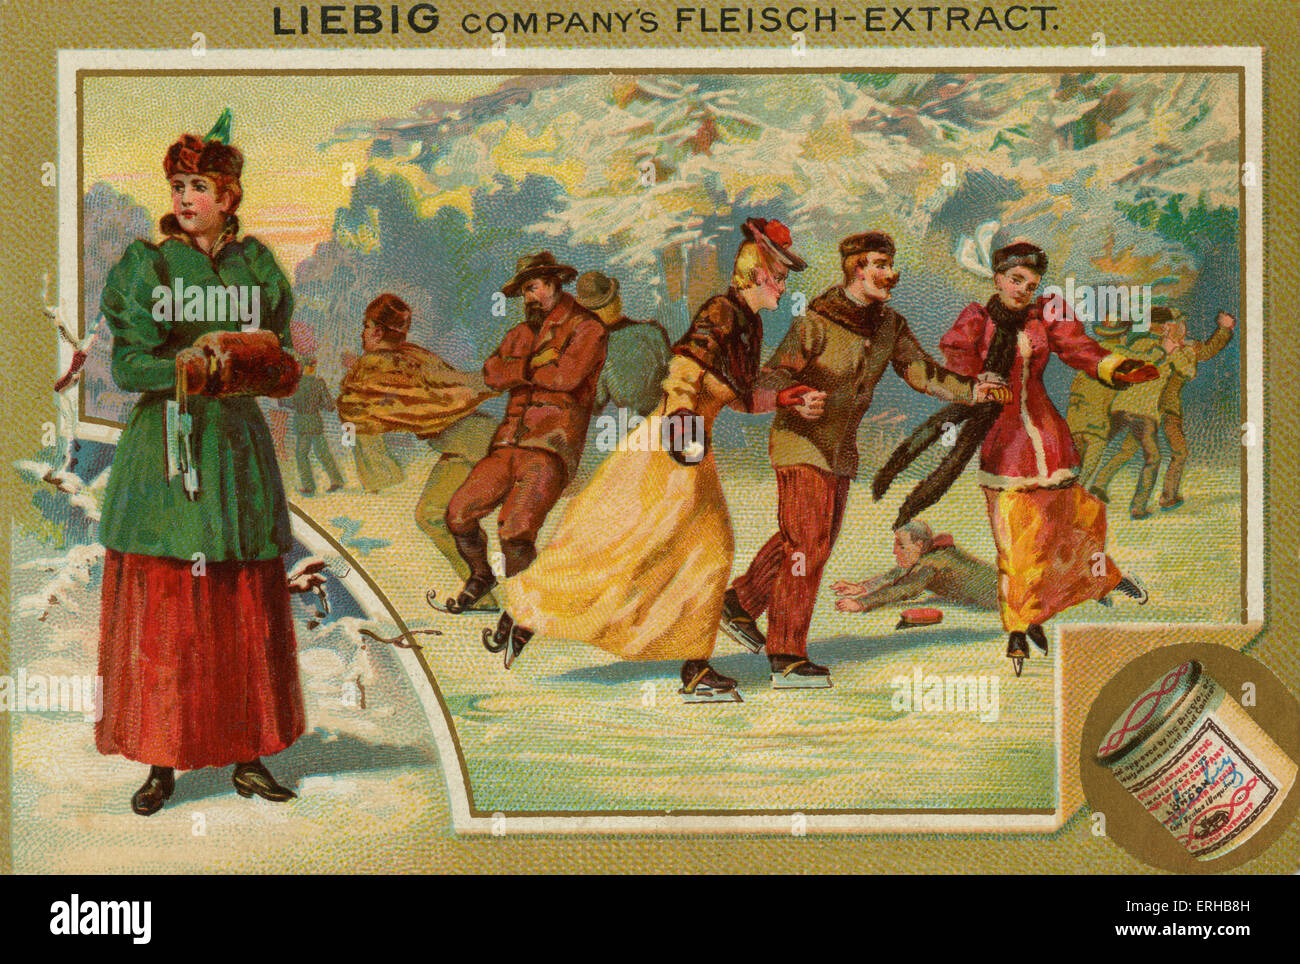 Ice skating on a frozen lake . Liebig card, Sports, 1896. - Stock Image